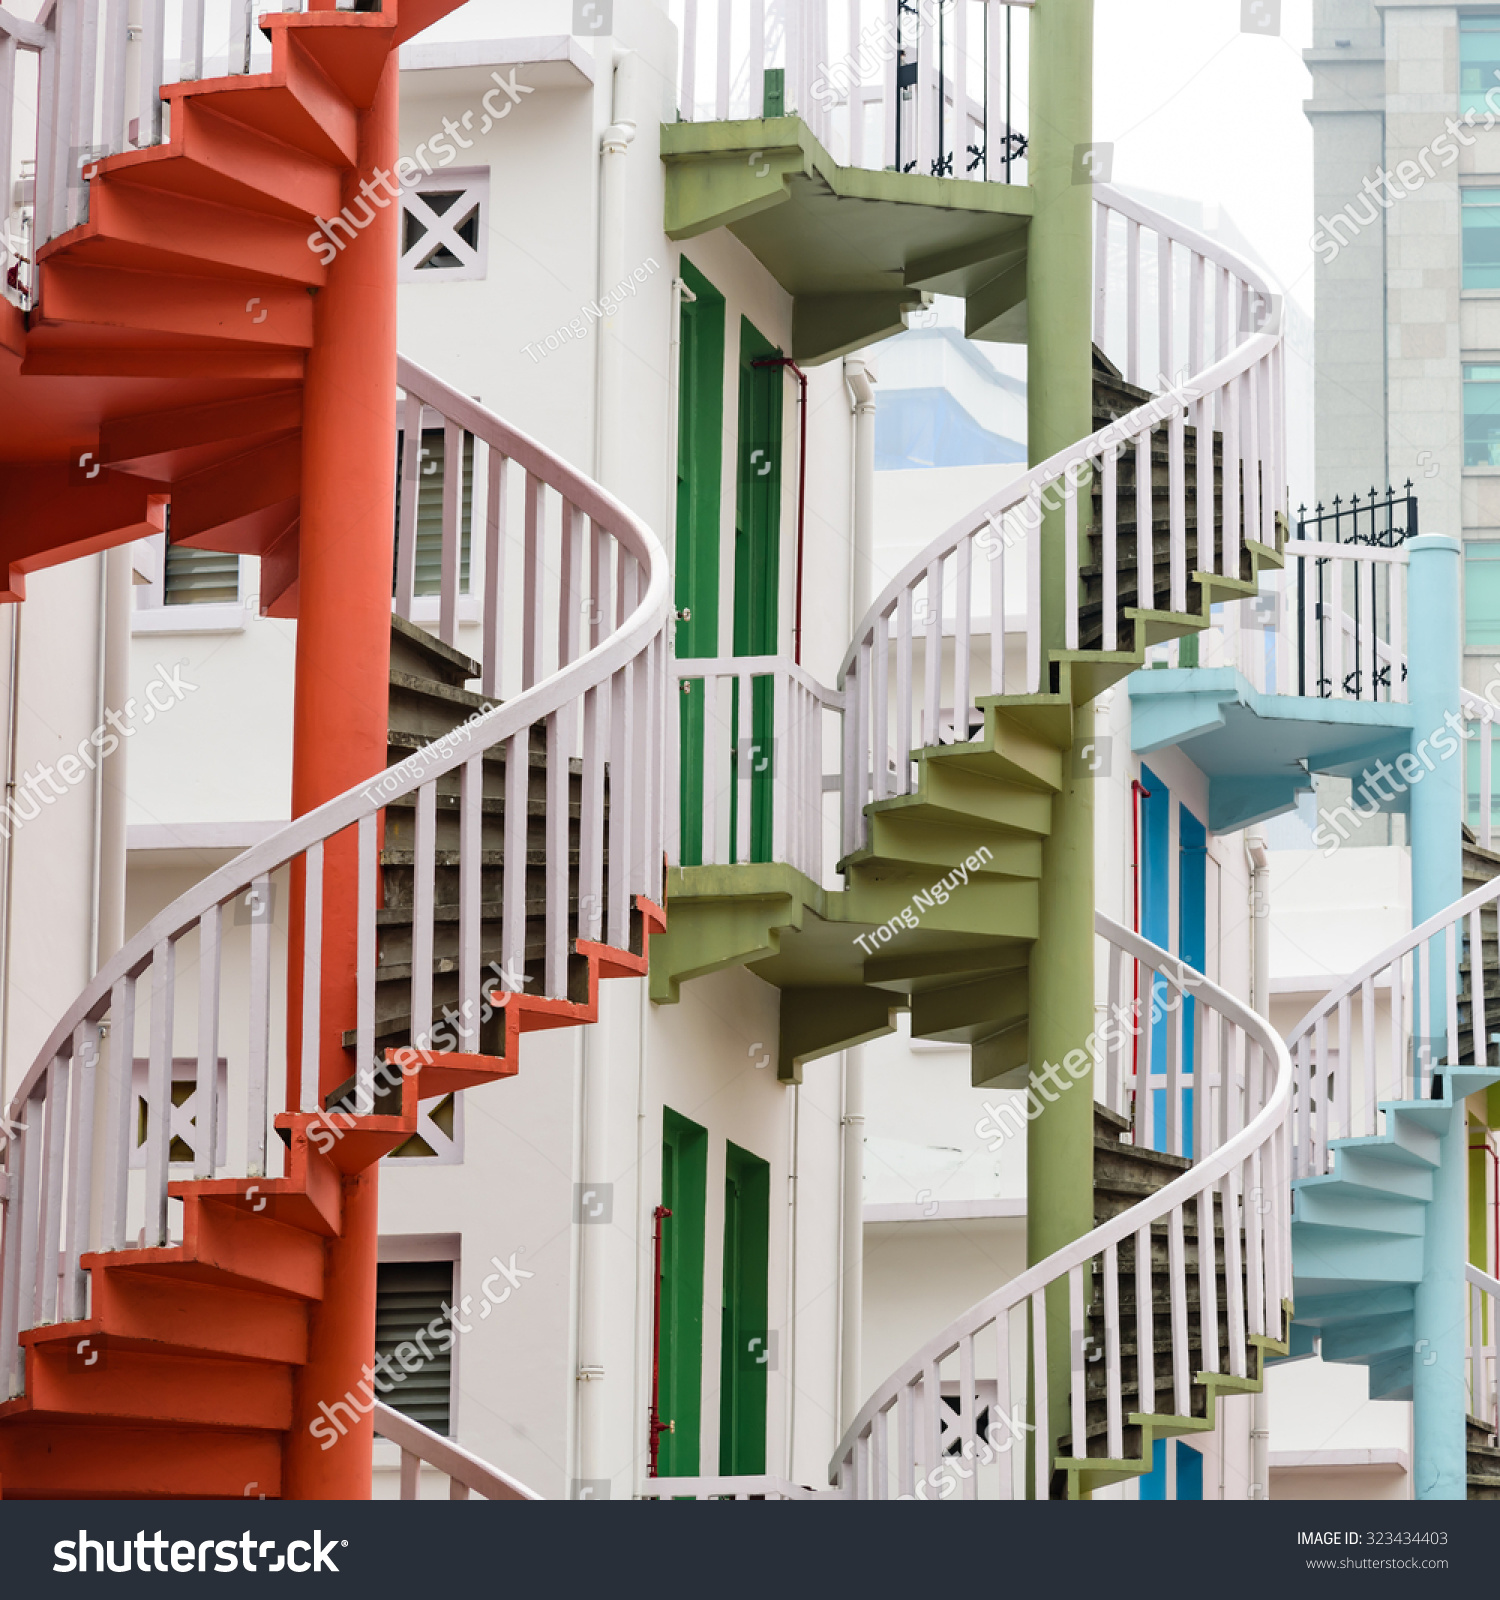 Colorful Spiral Staircases At The Back Of Traditional Chinese Shop